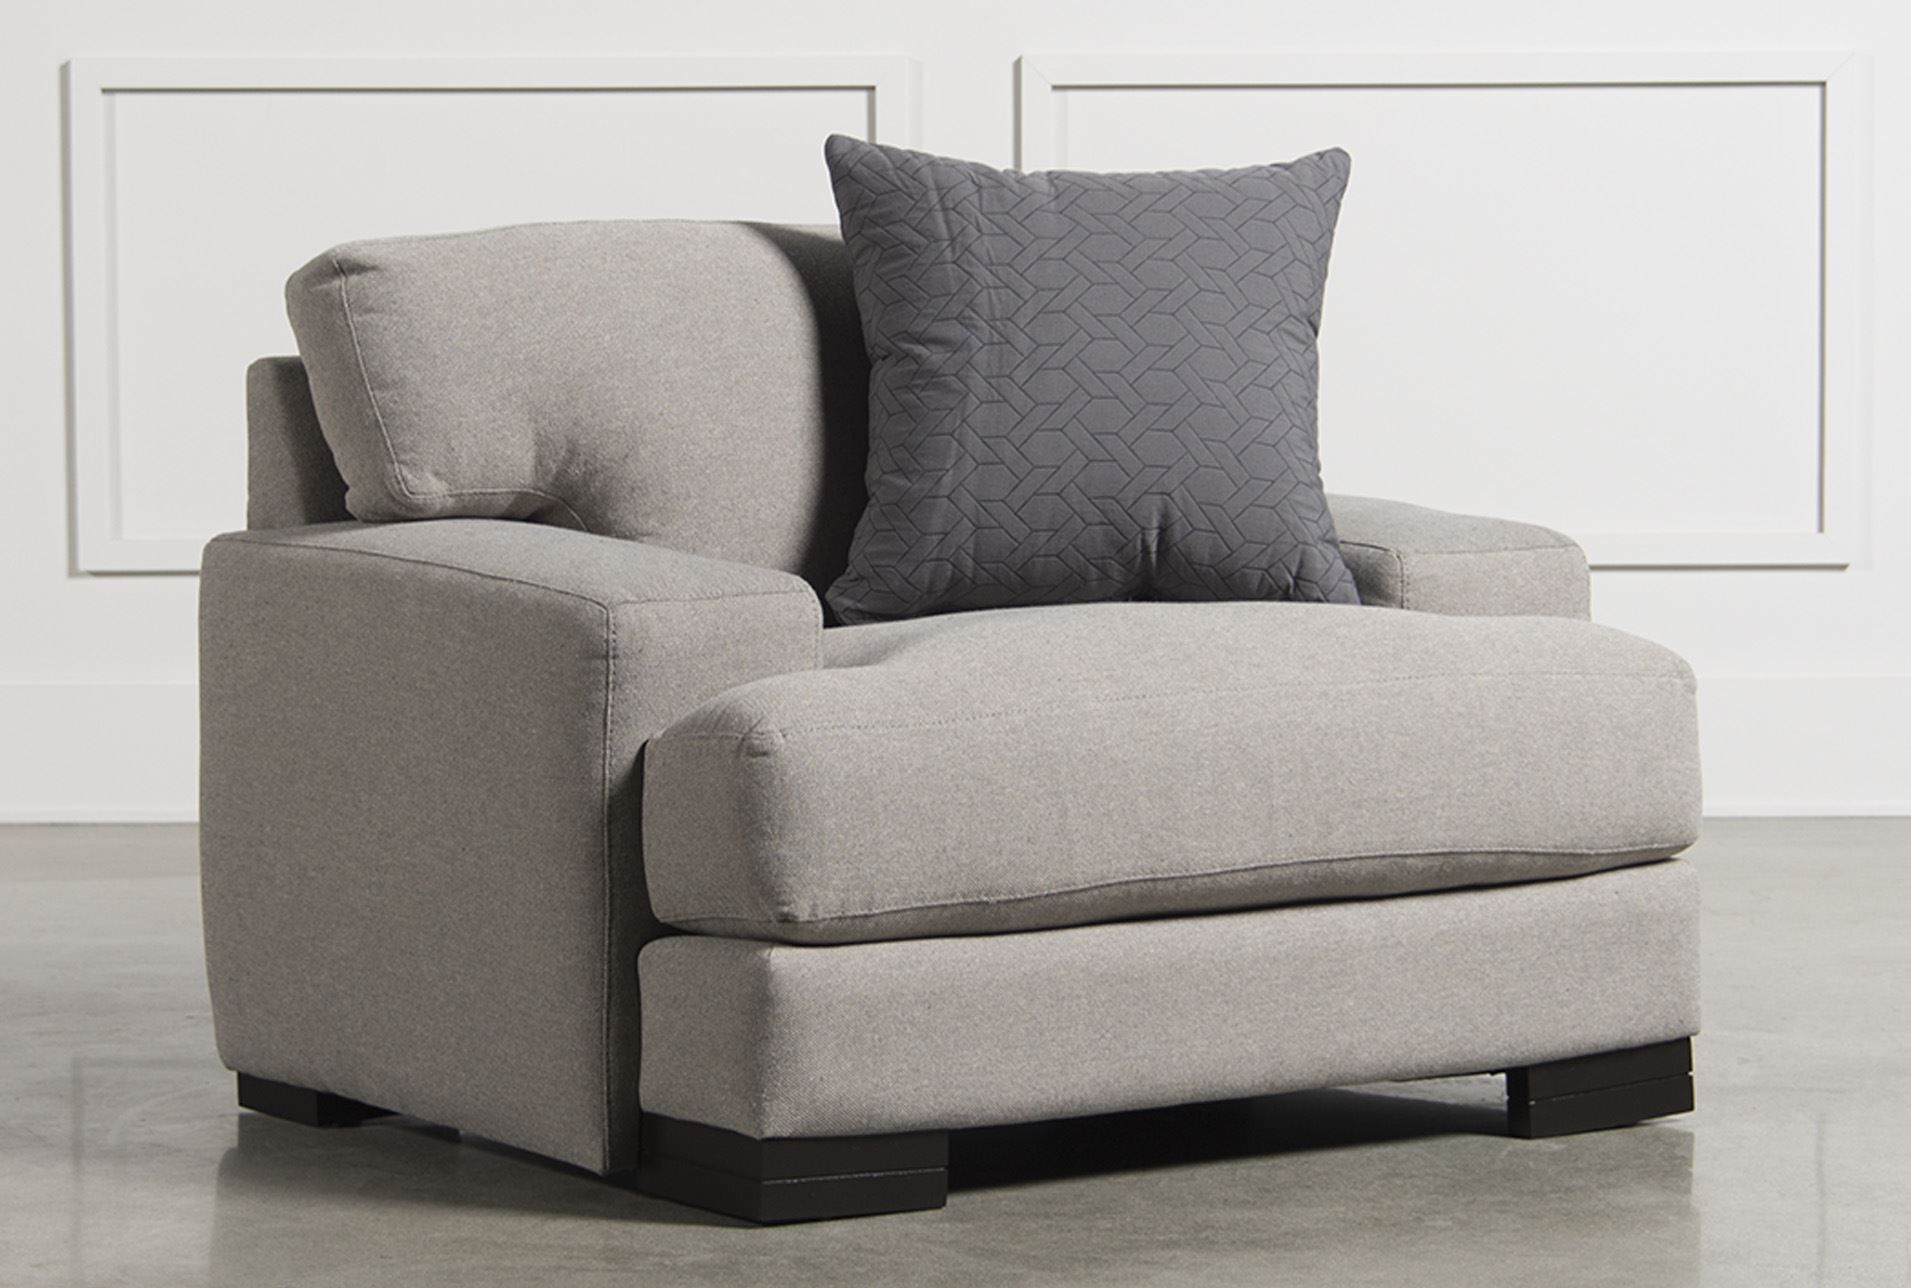 Aidan Chair | Apartment Ideas | Chair, Sofa Chair, Sofa Pertaining To Magnolia Home Dapper Fog Sofa Chairs (View 11 of 20)